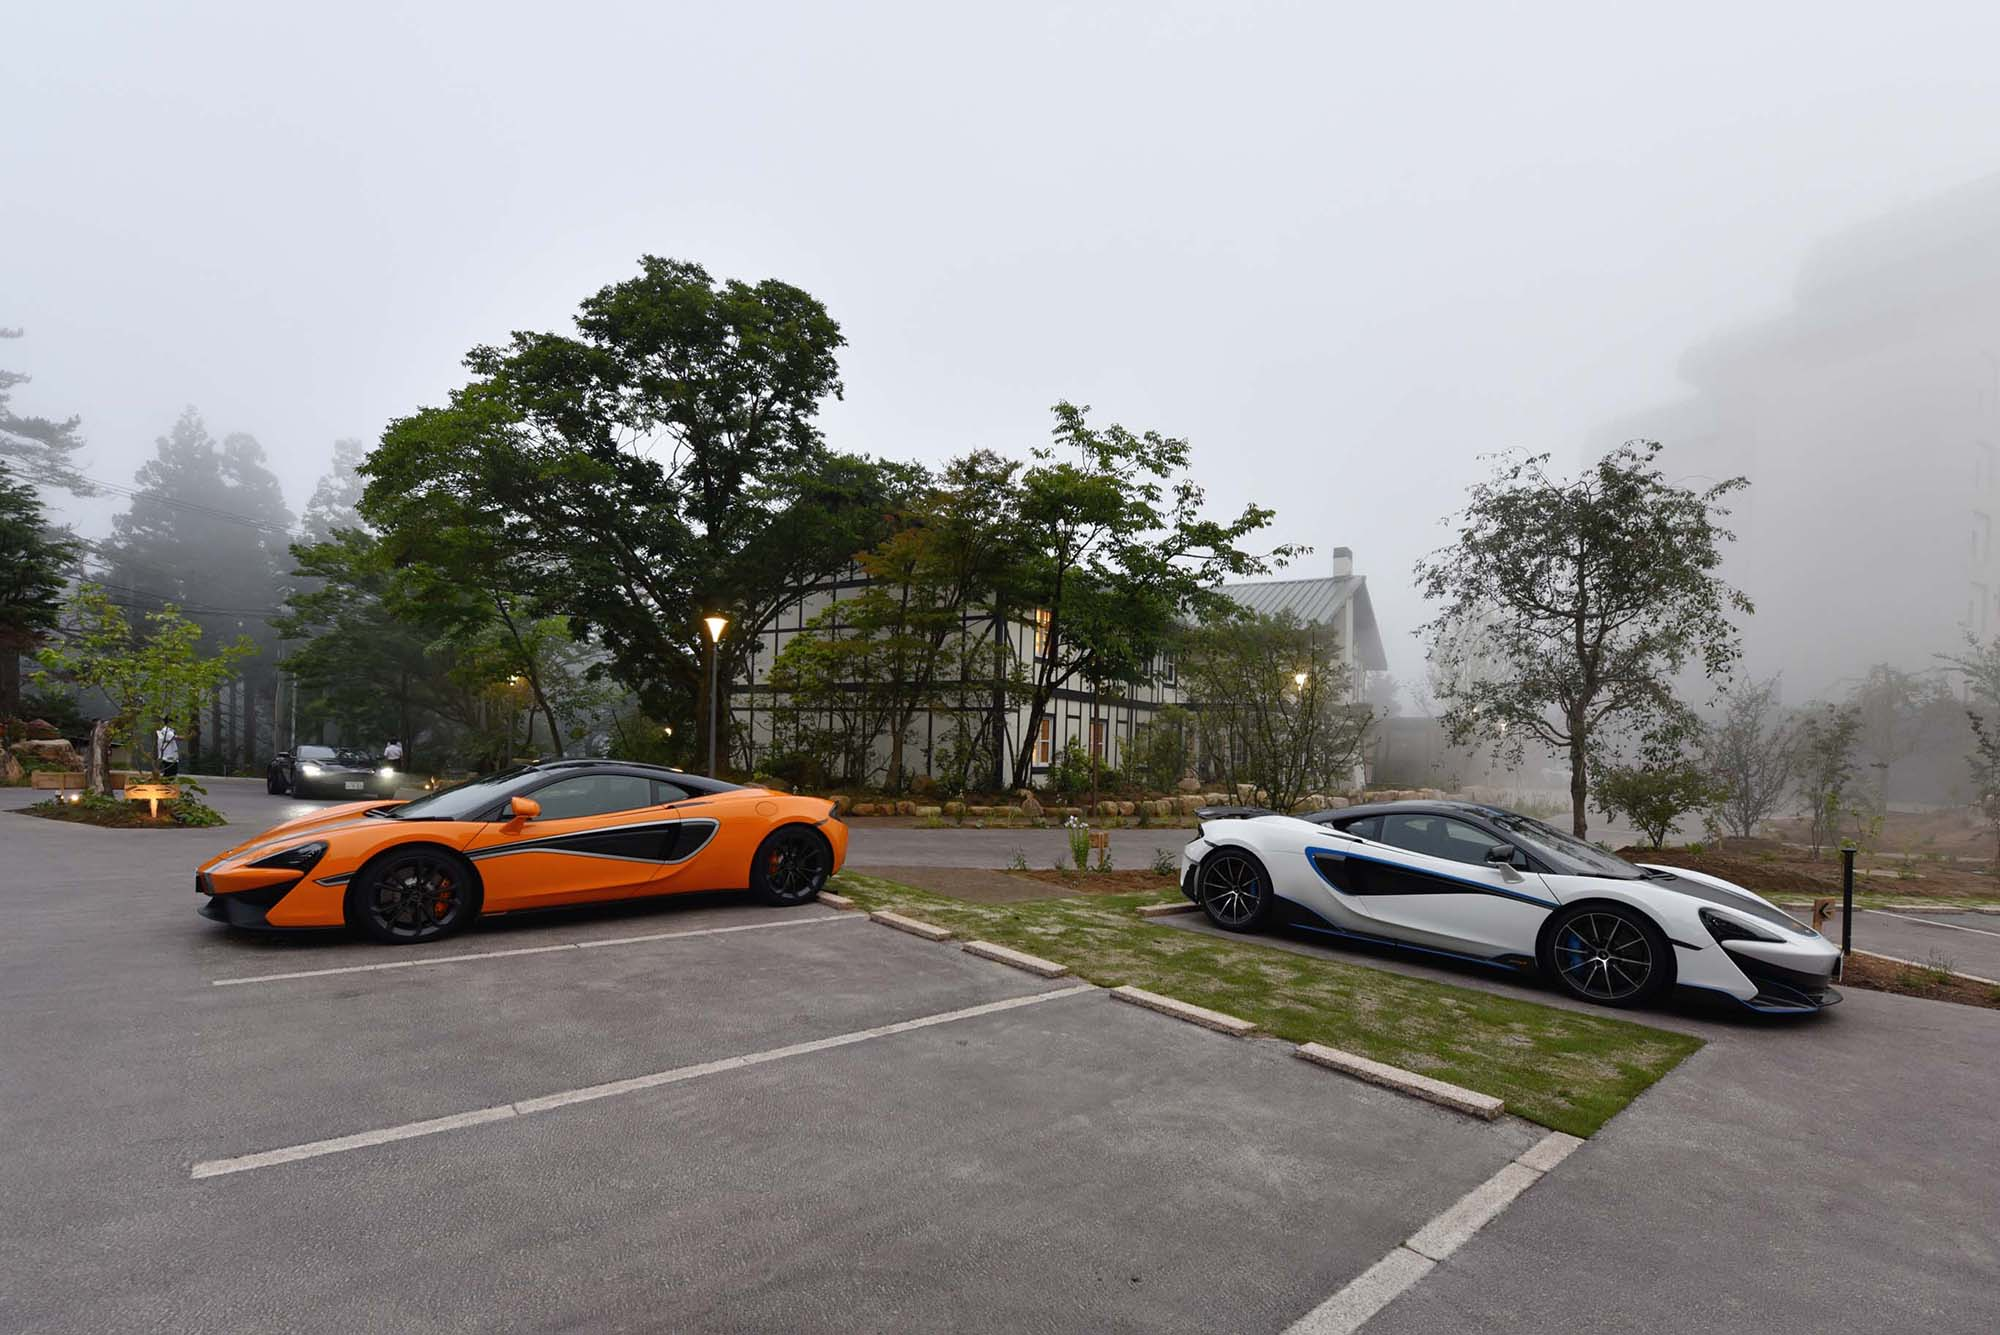 The hotel is an ideal hideaway for the car owners of McLaren and Aston Martin.